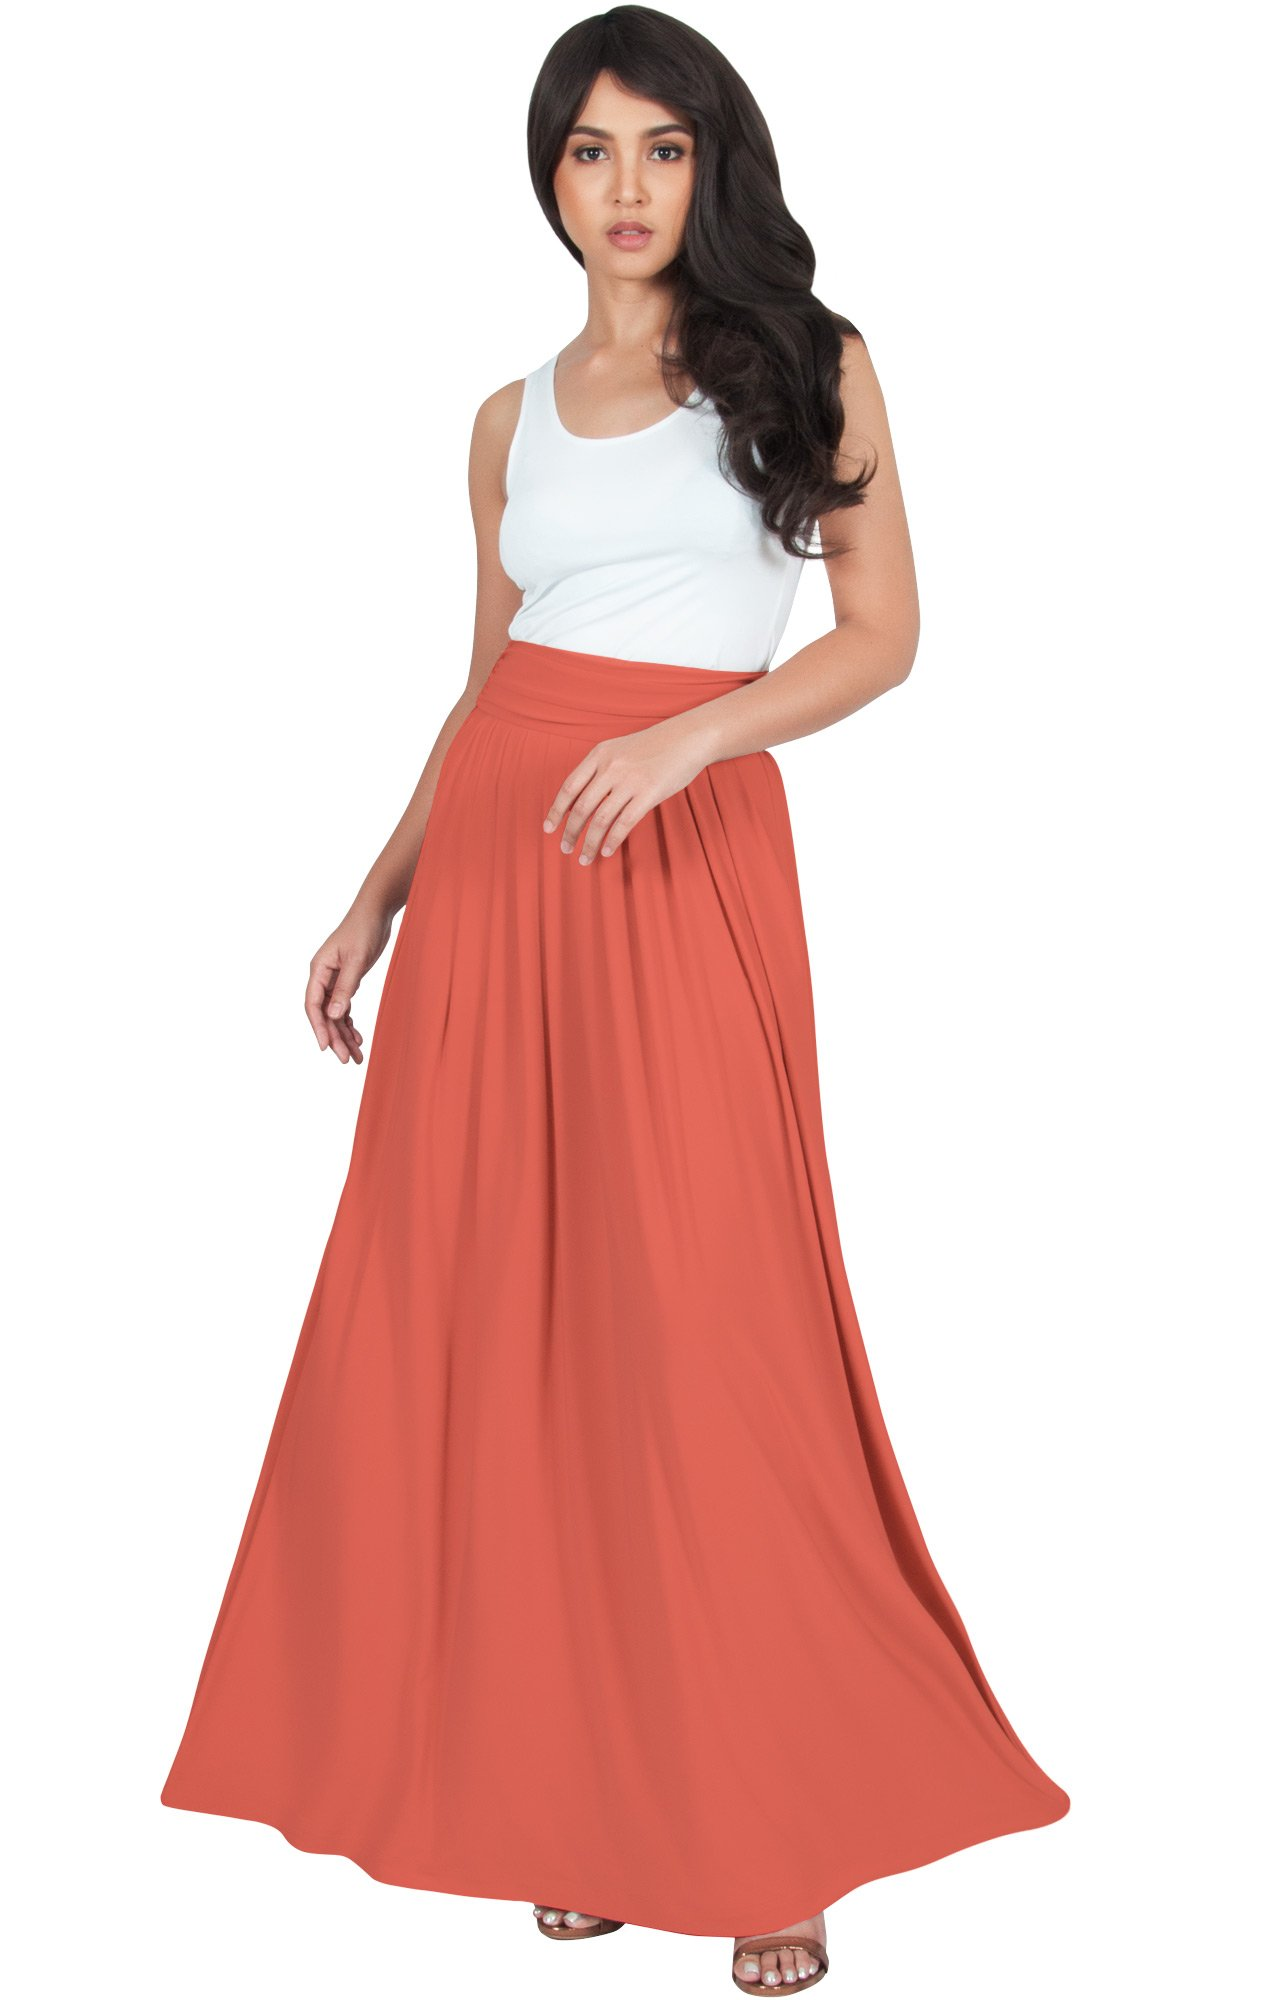 KOH KOH Womens Womens Long Flowy Cute Modest High Waist Floor Length Pockets Casual Semi Formal Vintage Slimming Work Office Workwear Maxi Skirt Skirts, Coral L 12-14